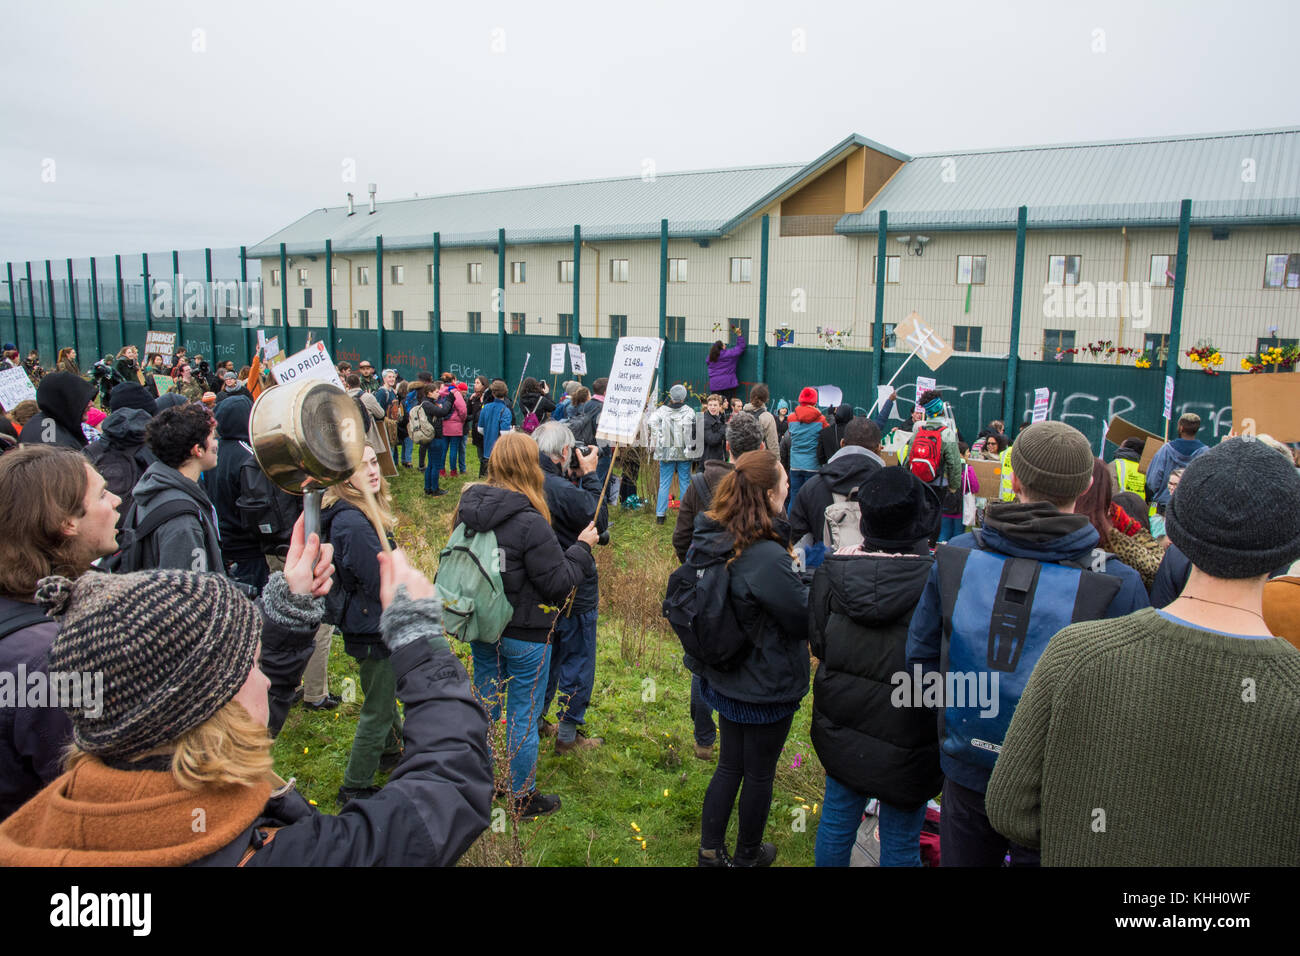 Milton Ernest, Bedford, UK. Saturday 18th November 2017.  Around 1000 protesters attended a Shut Down Yarl's Wood Stock Photo